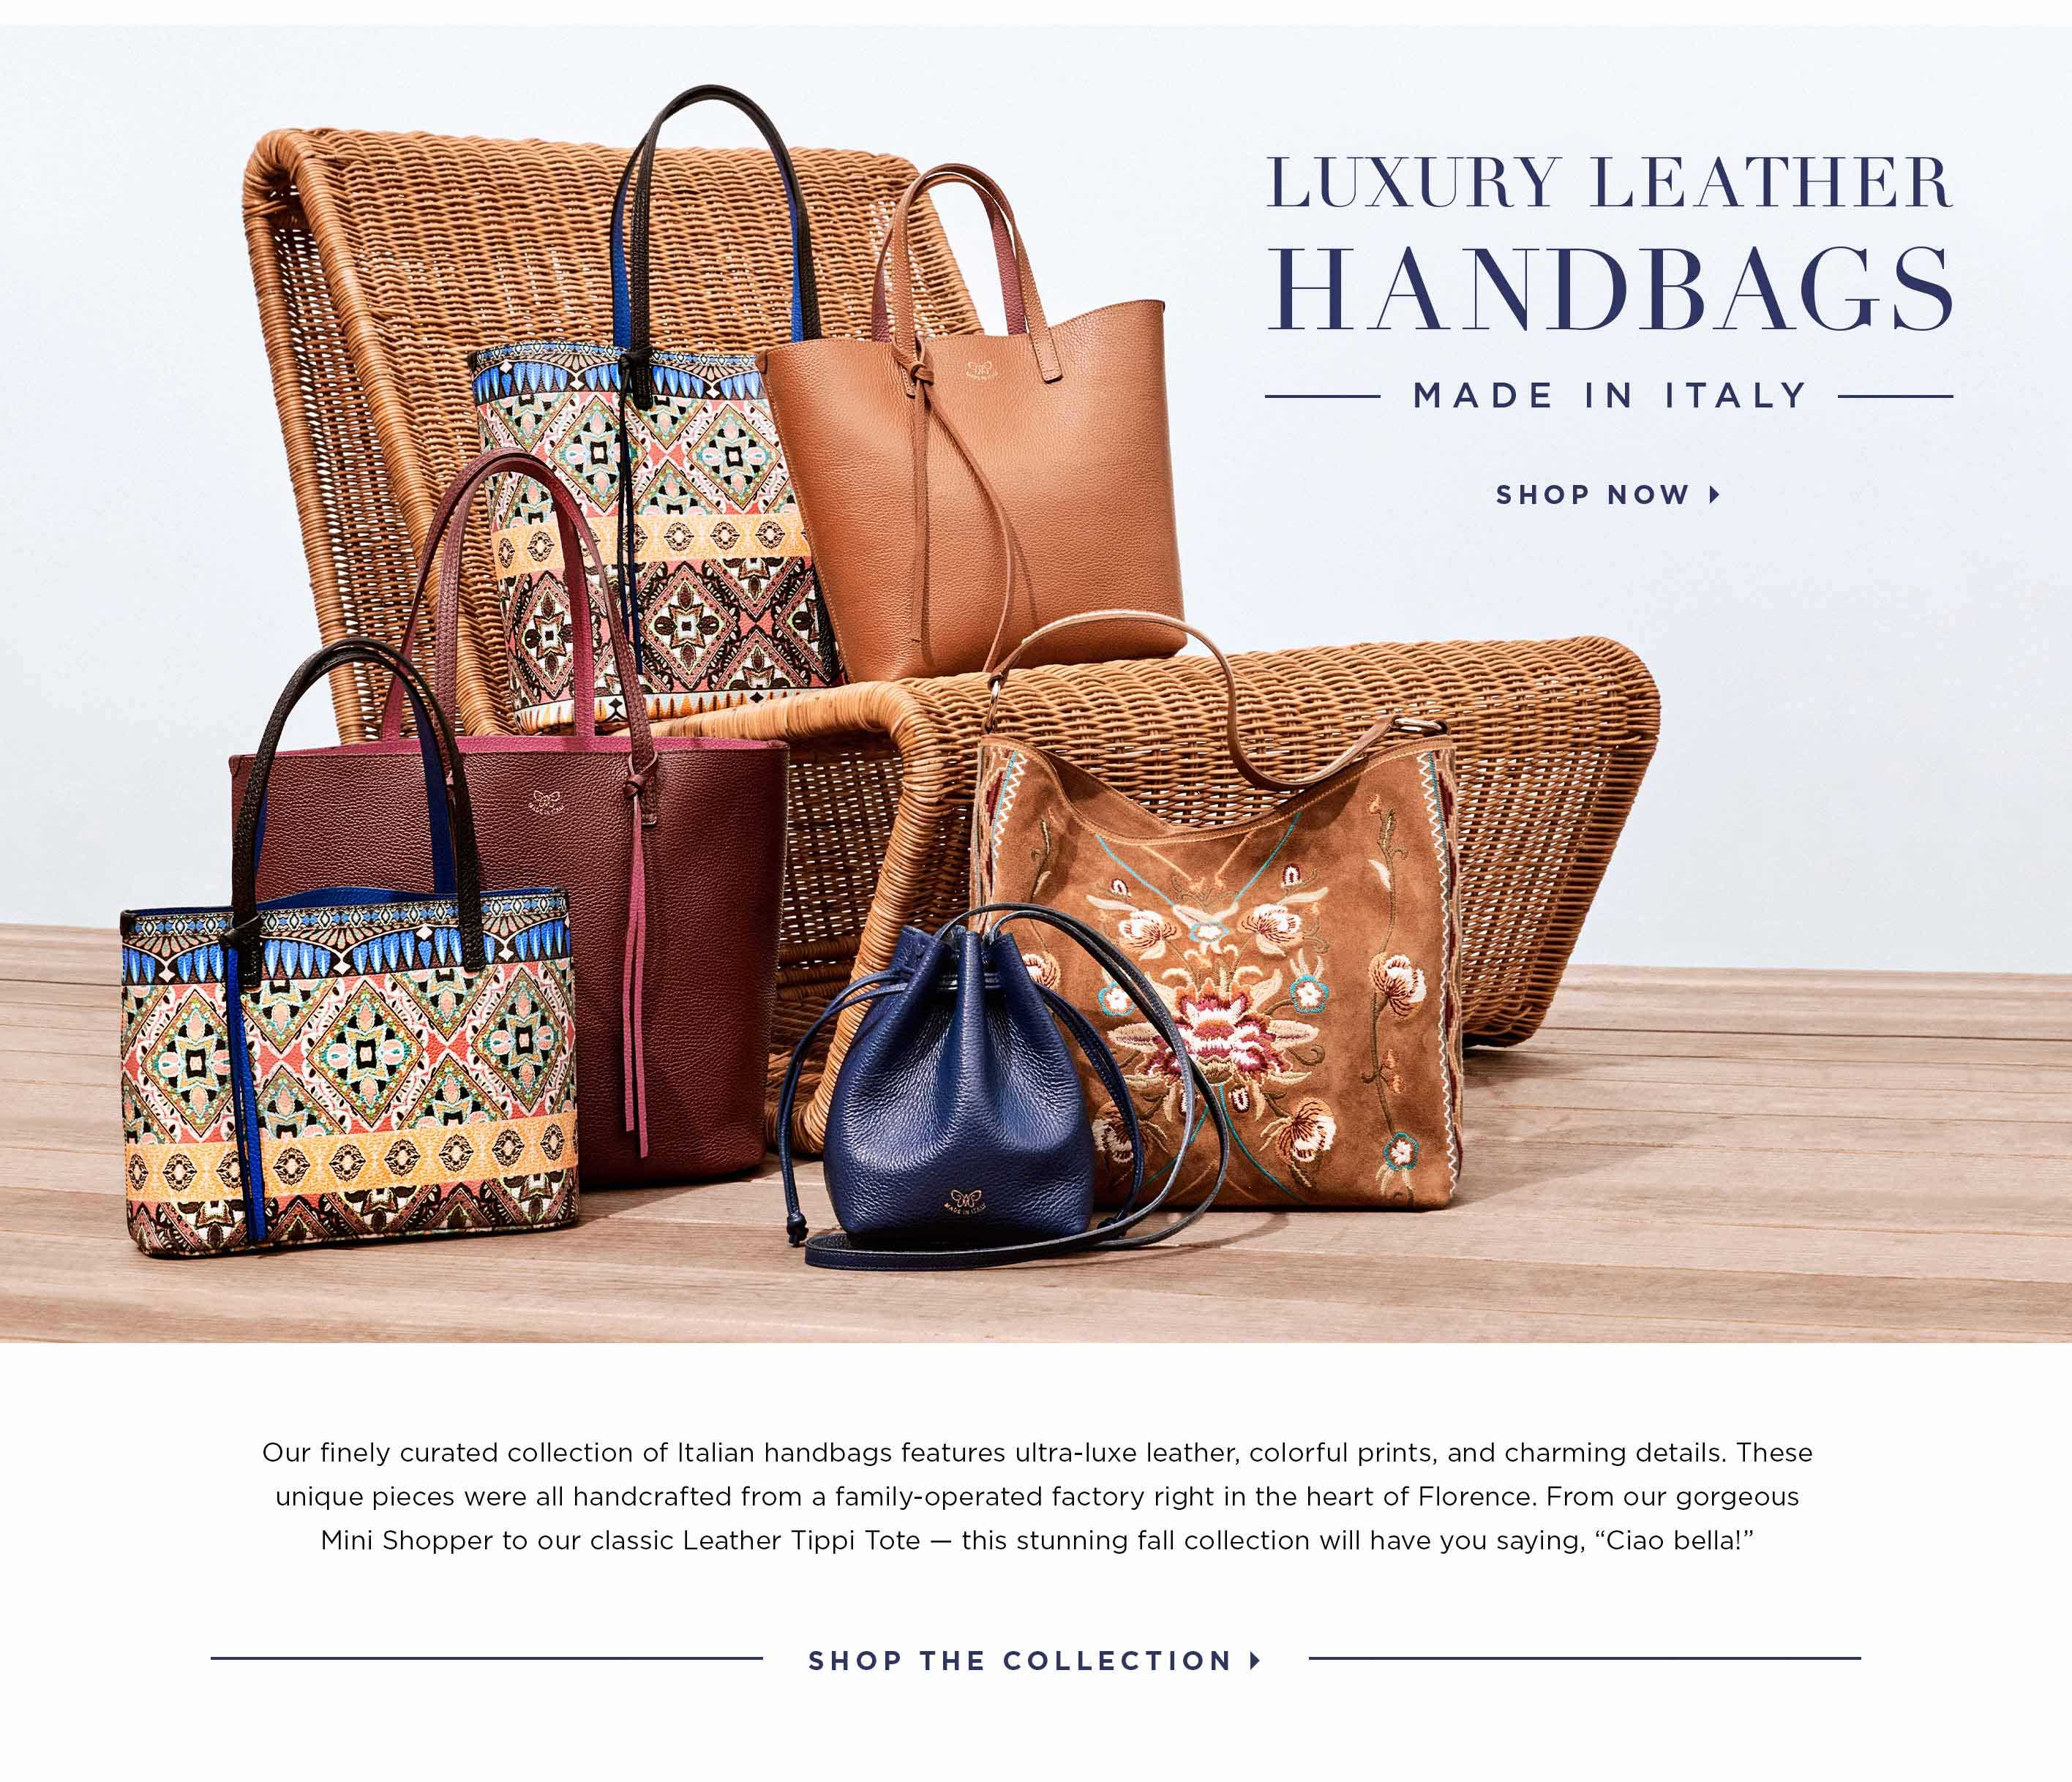 Luxury Leather Handbags - Made in Italy. Shop now. Our finely curated collection of Italian handbags features ultra-luxe leather, colorful prints, and charming details. These unique pieces were all handcrafted from a family-operated factory right in the heart of Florence. From our gorgeous Mini Shopper to our classic Leather Tippi Tote — this stunning fall collection will have you saying, Ciao bella! Shop the Collection.